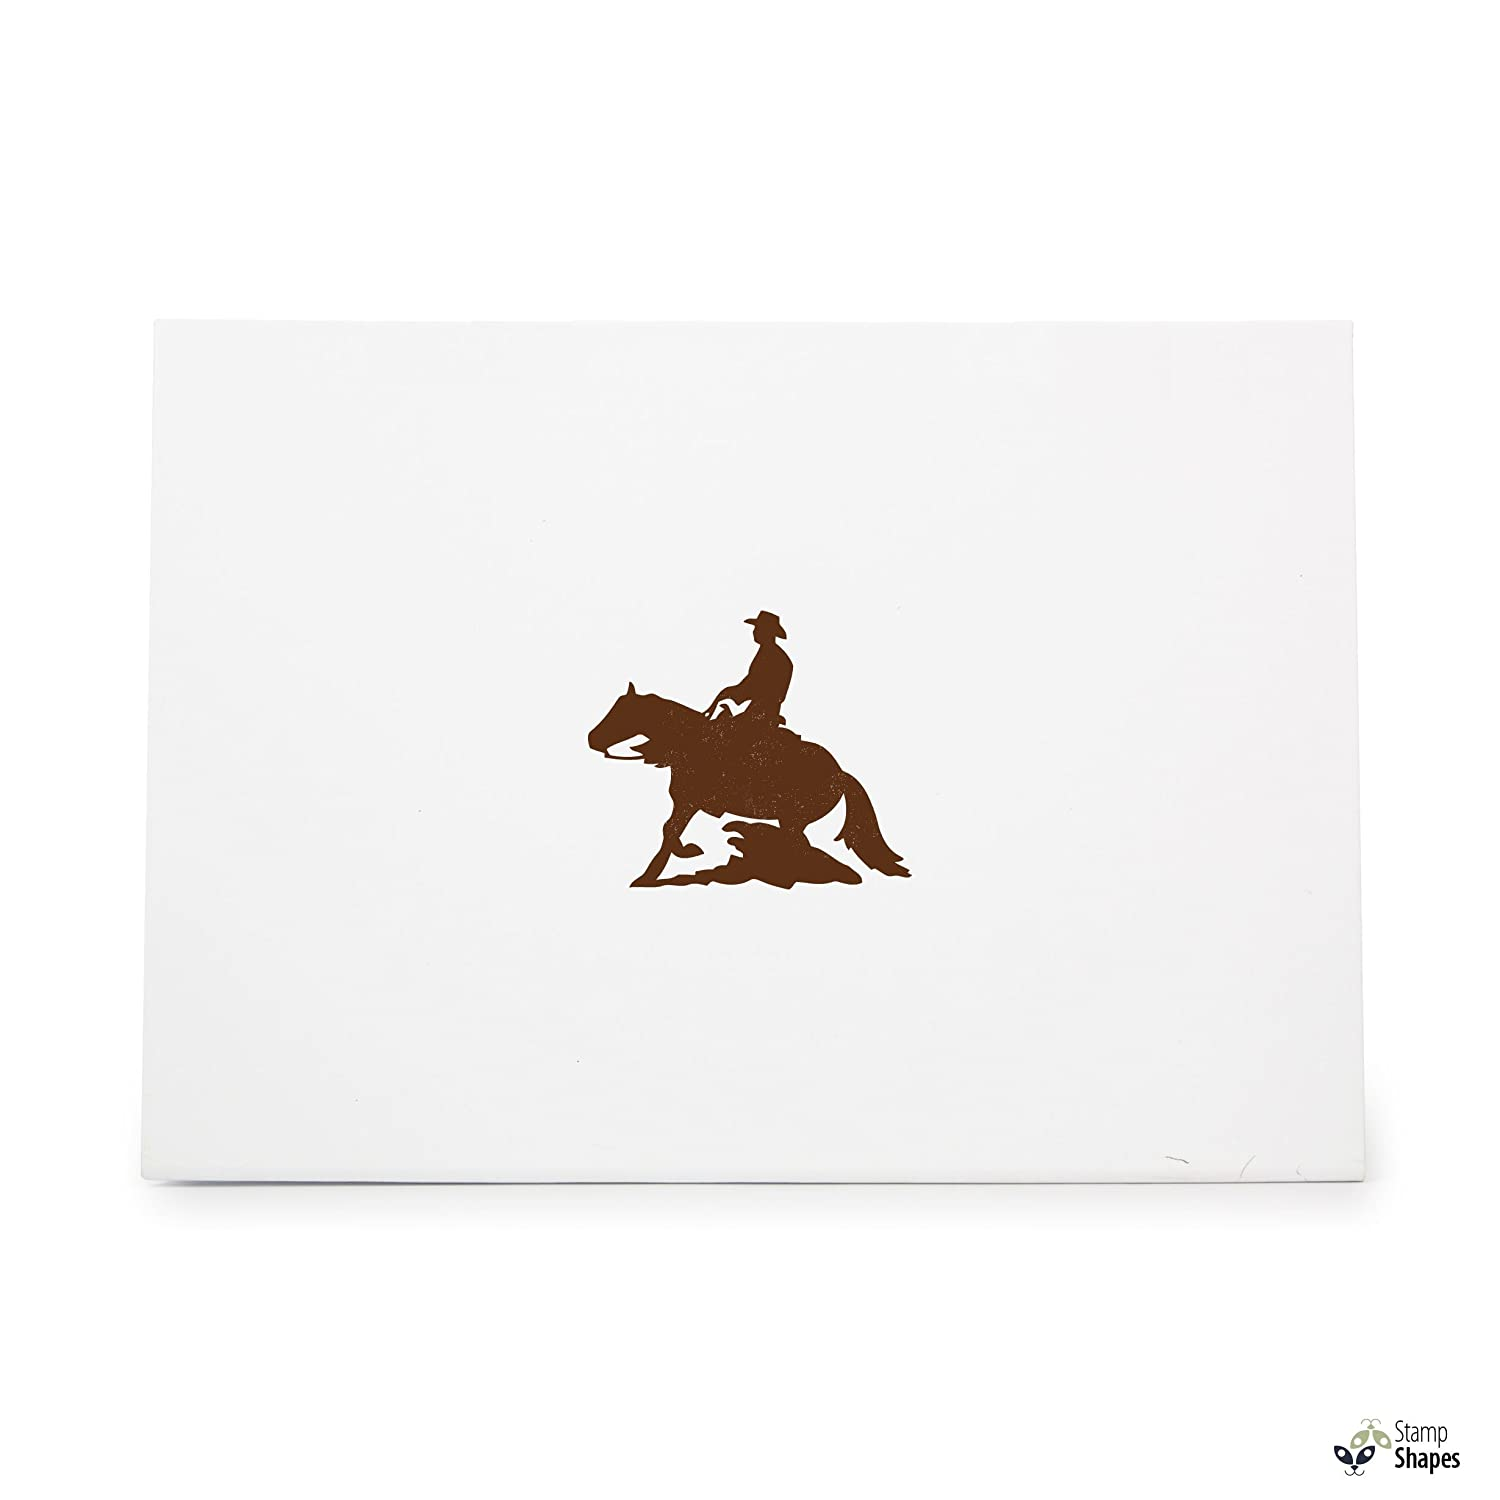 Crafts Ink Stamping Crafts Rubber Stamp Shape great for Scrapbooking Item 1321974 Card Making Reining Horse